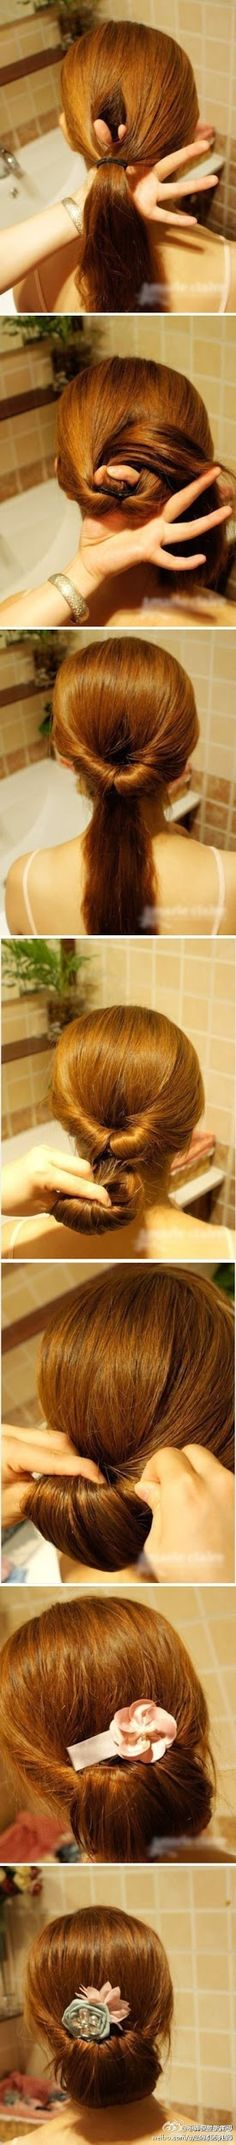 Make a Simple updo | hairstyles tutorial